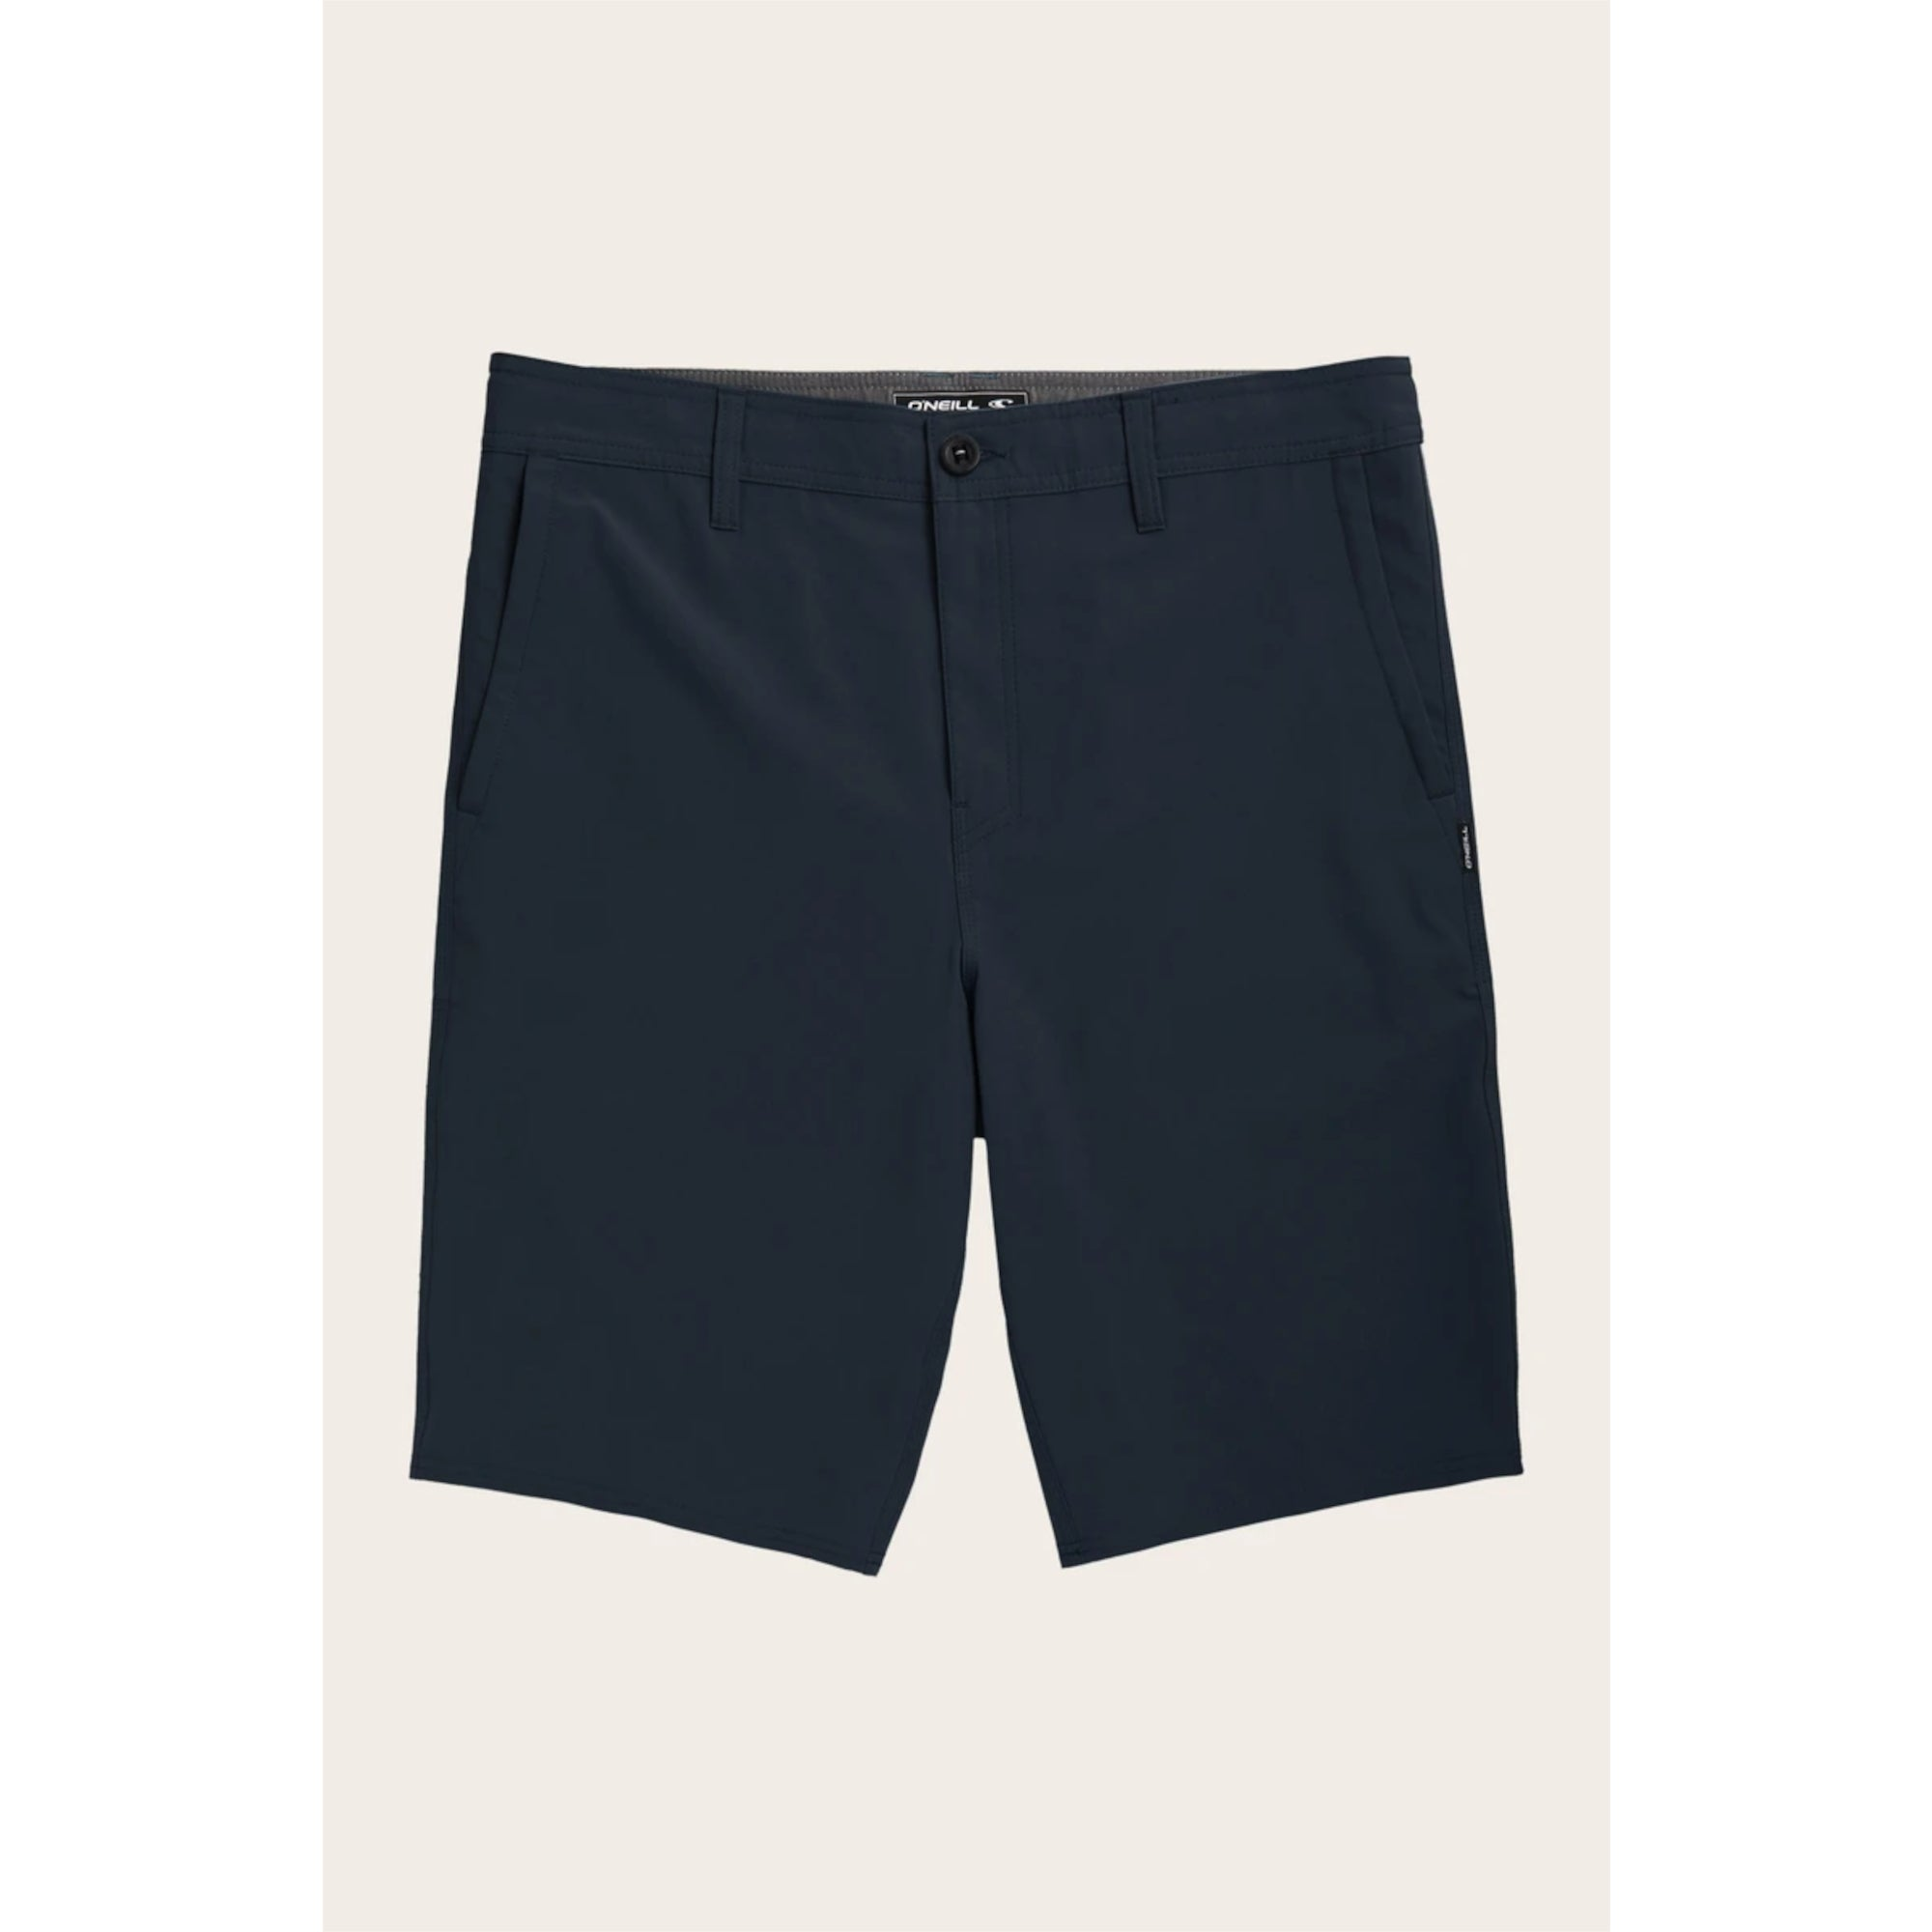 "O'Neill Men's Reserve Solid 19"" Hybrid Men's Walkshorts"